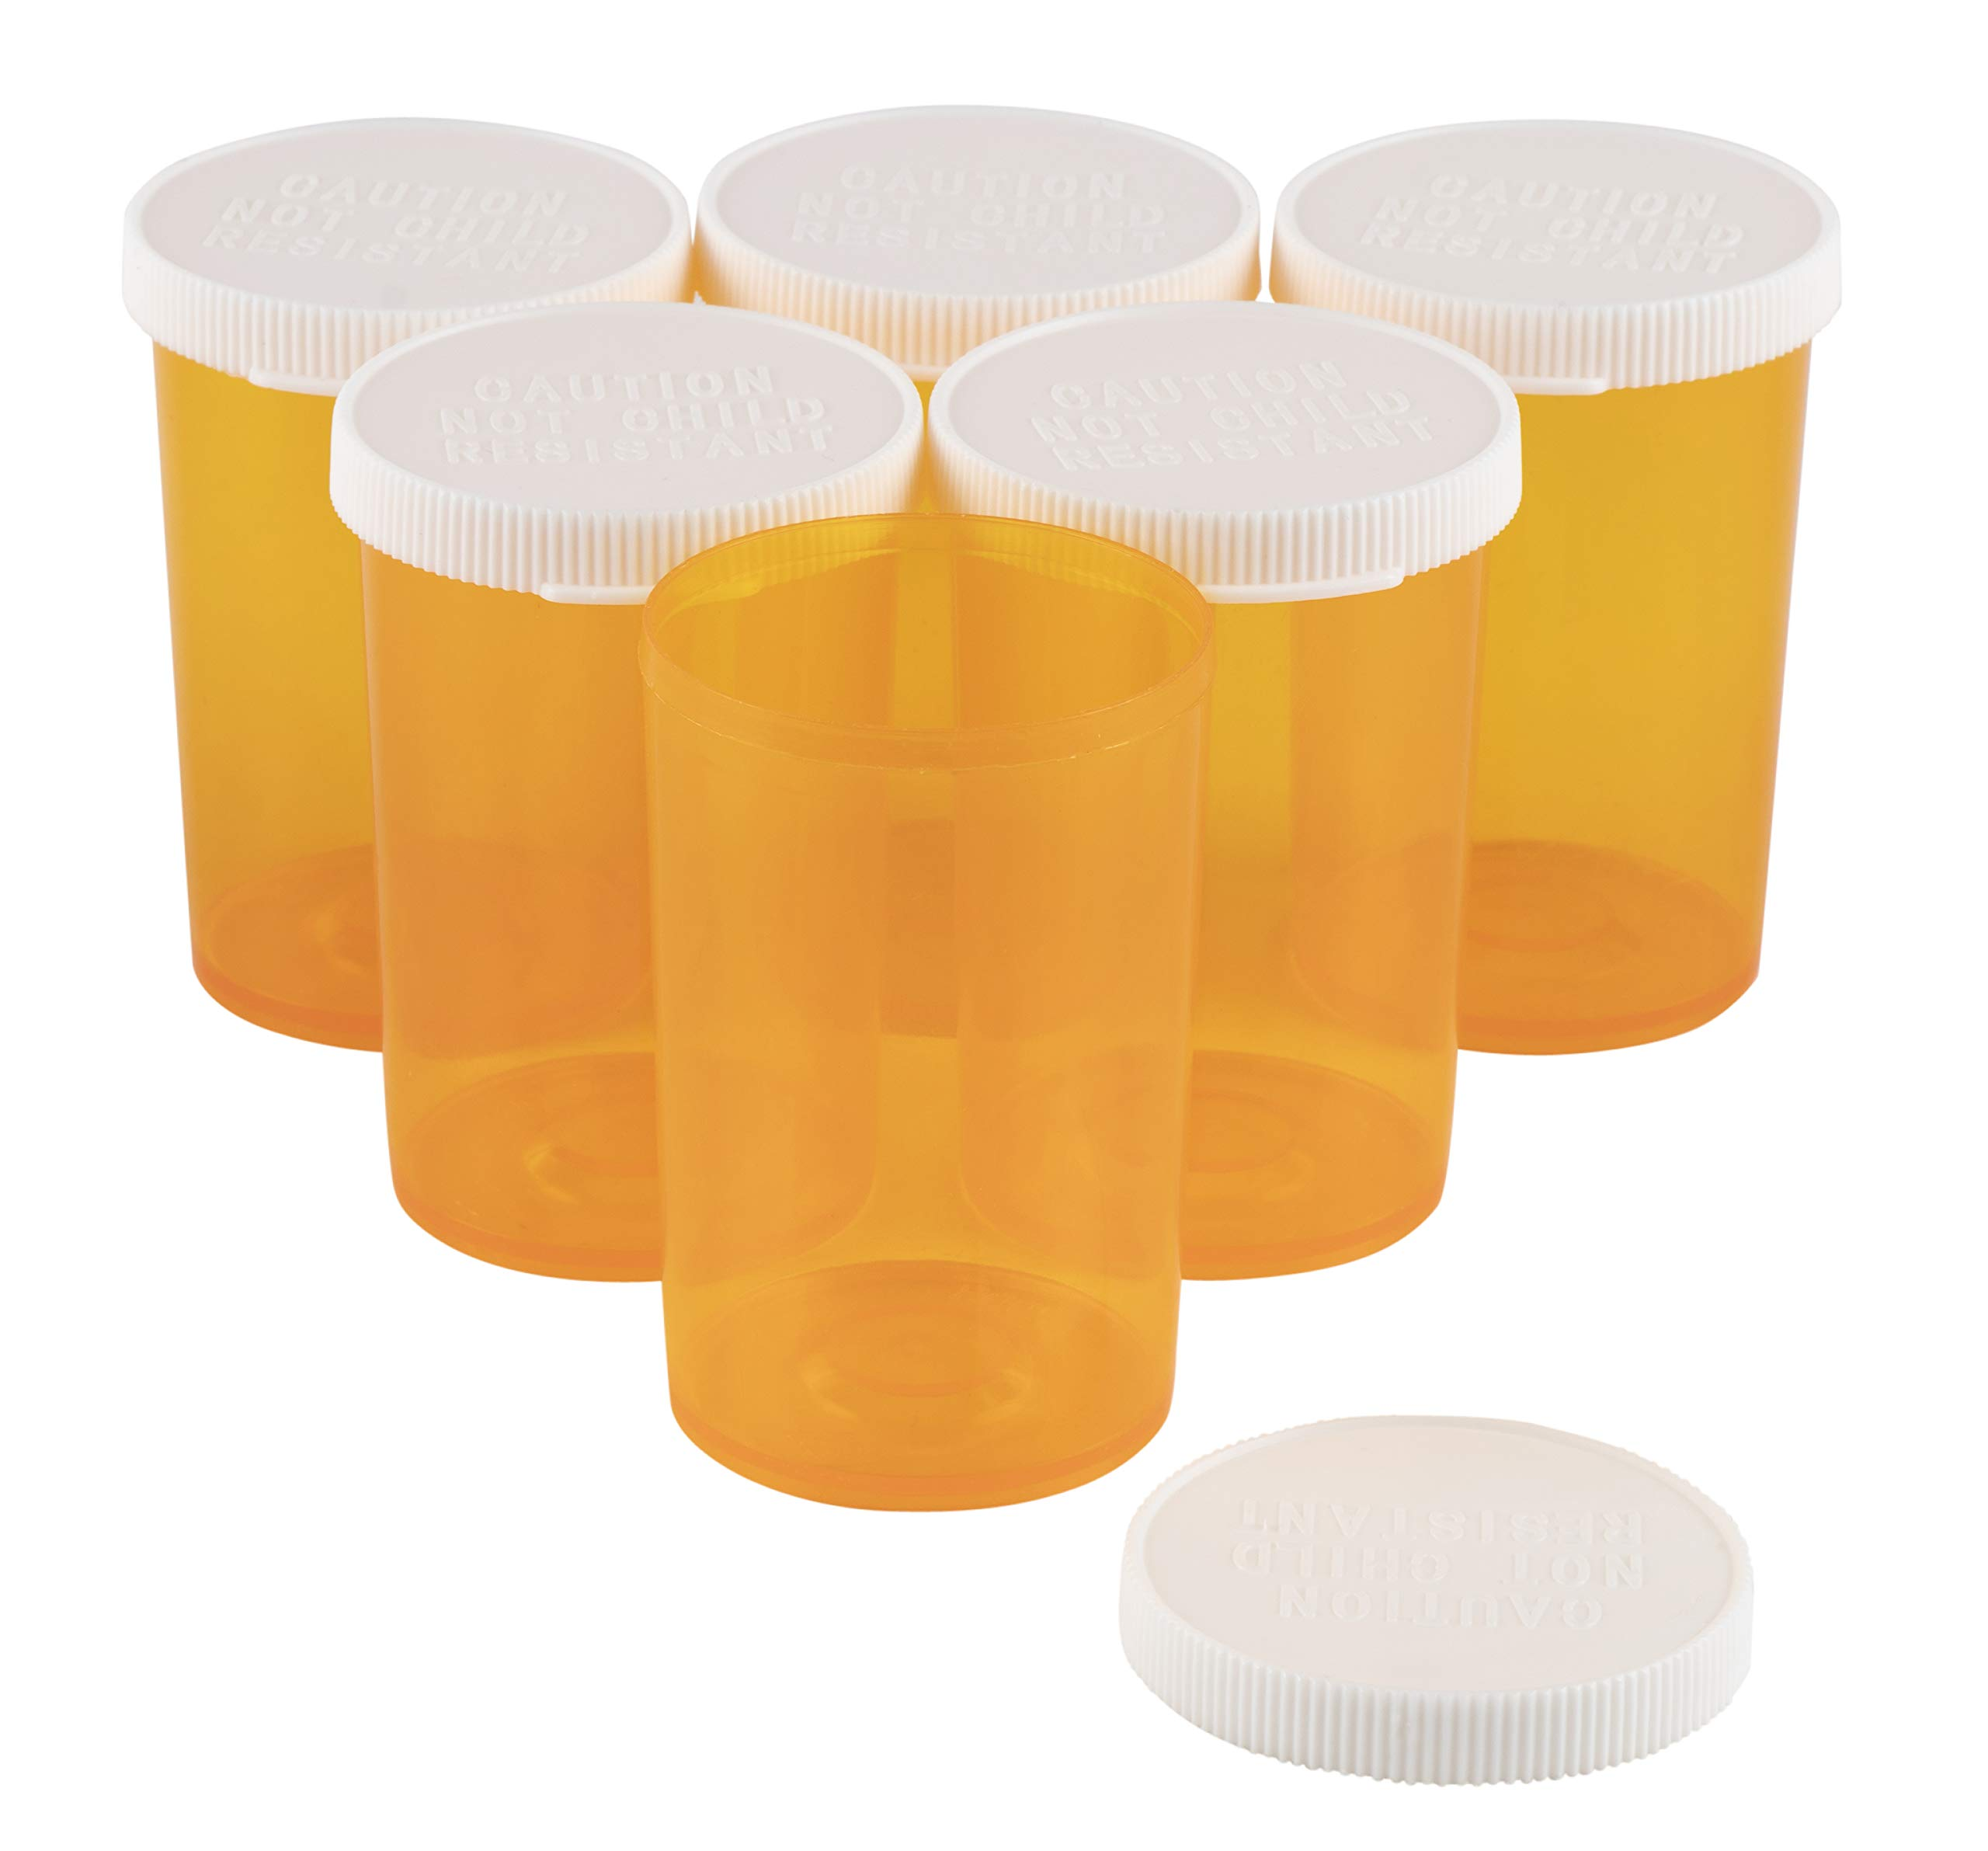 Juvale Empty Prescription Pill Vial Container 20 Dram Bottles (50 Count) by Juvale